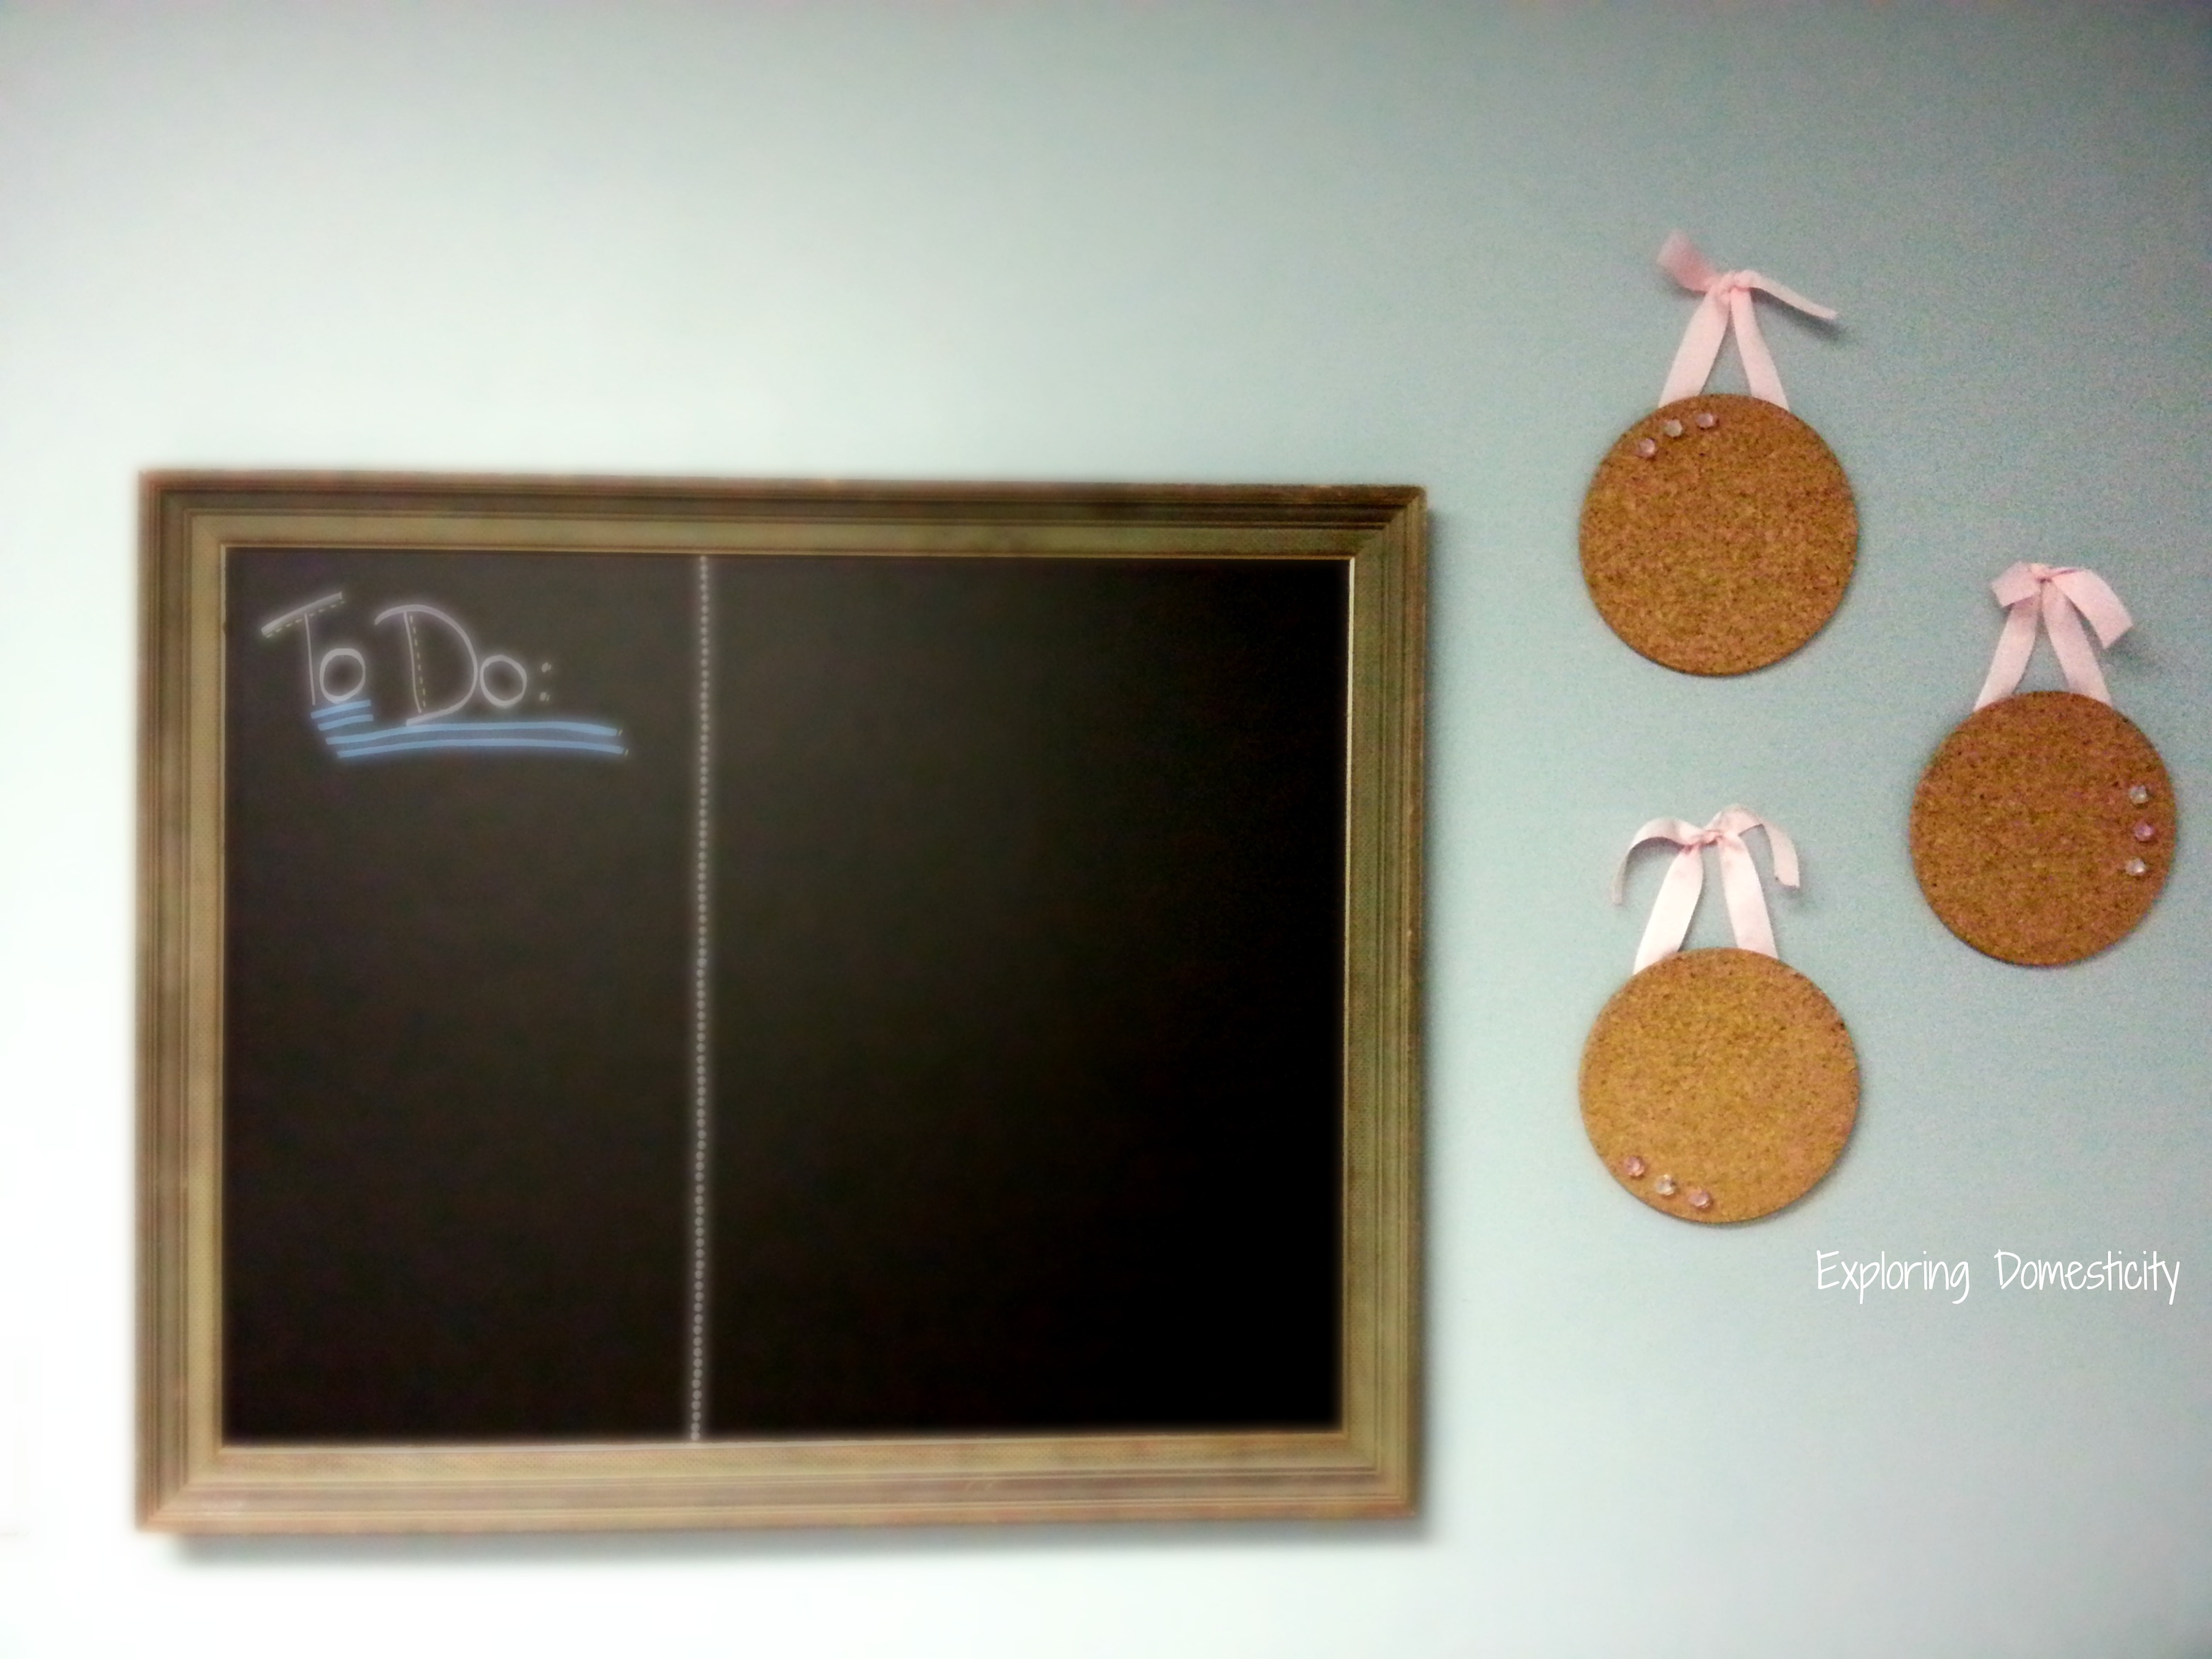 Diy cork message boards super easy ikea hack exploring for Ikea cork board